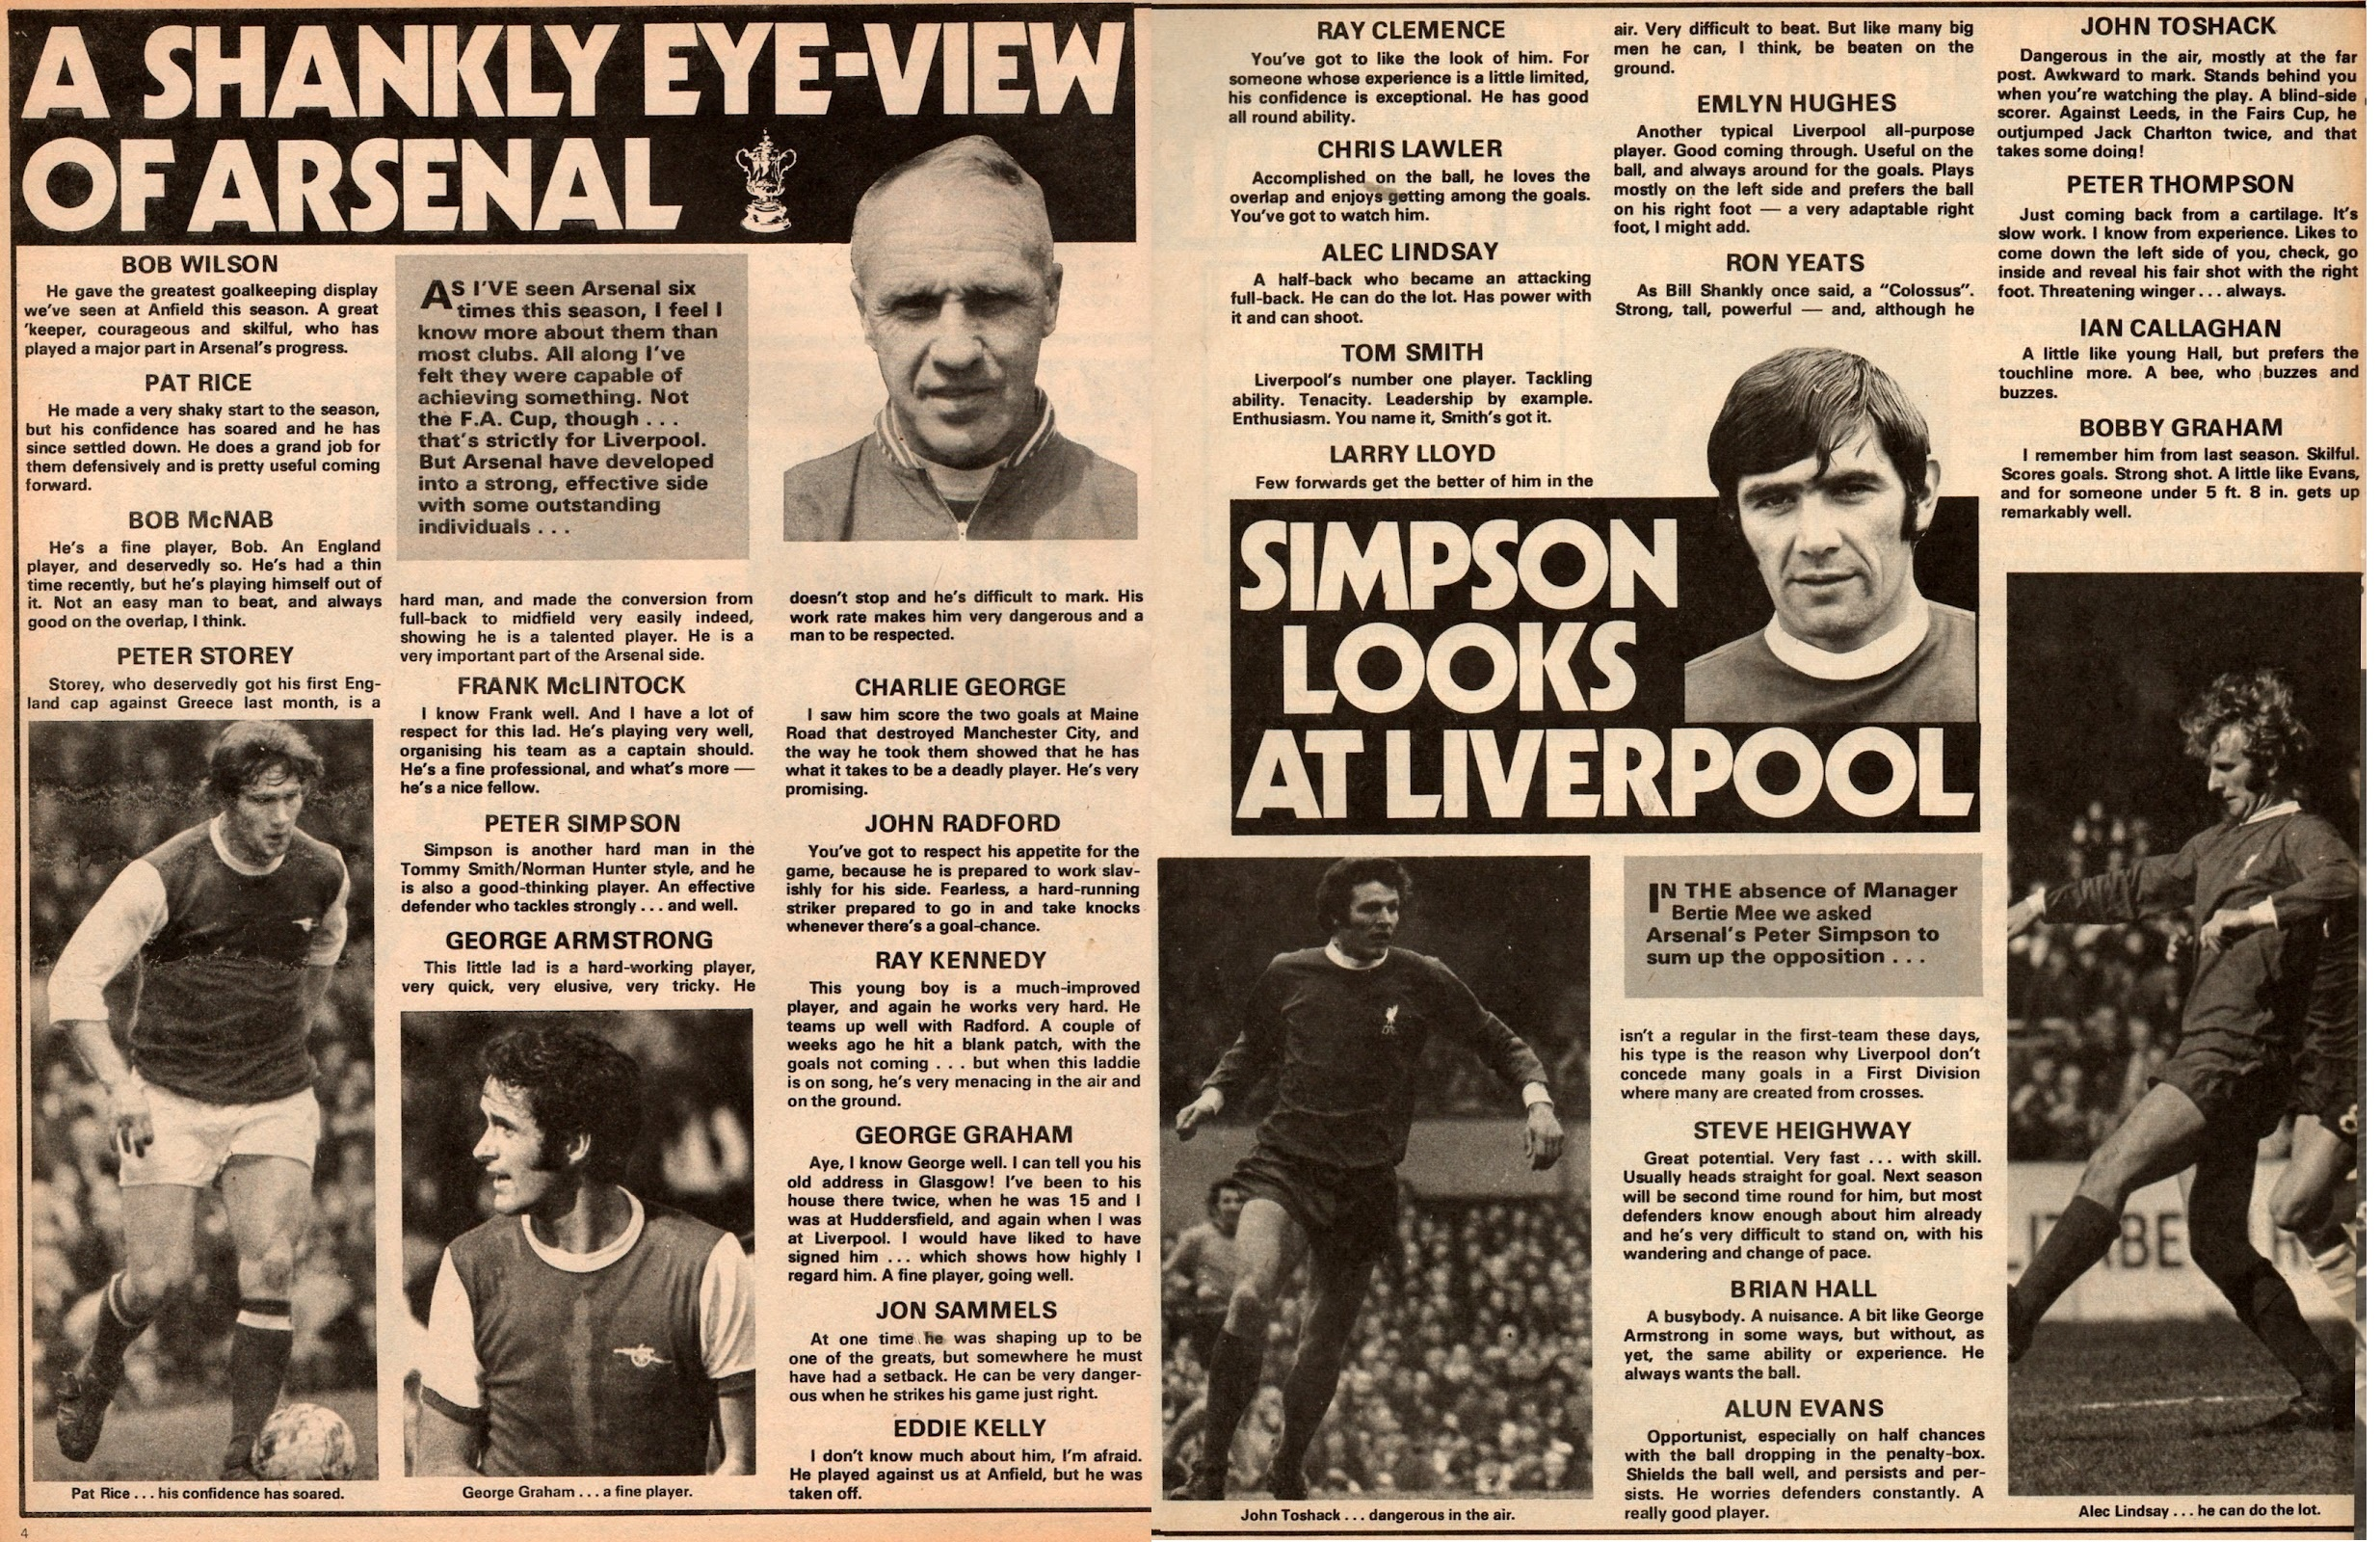 Shankly's view of Arsenal's 1971 final team